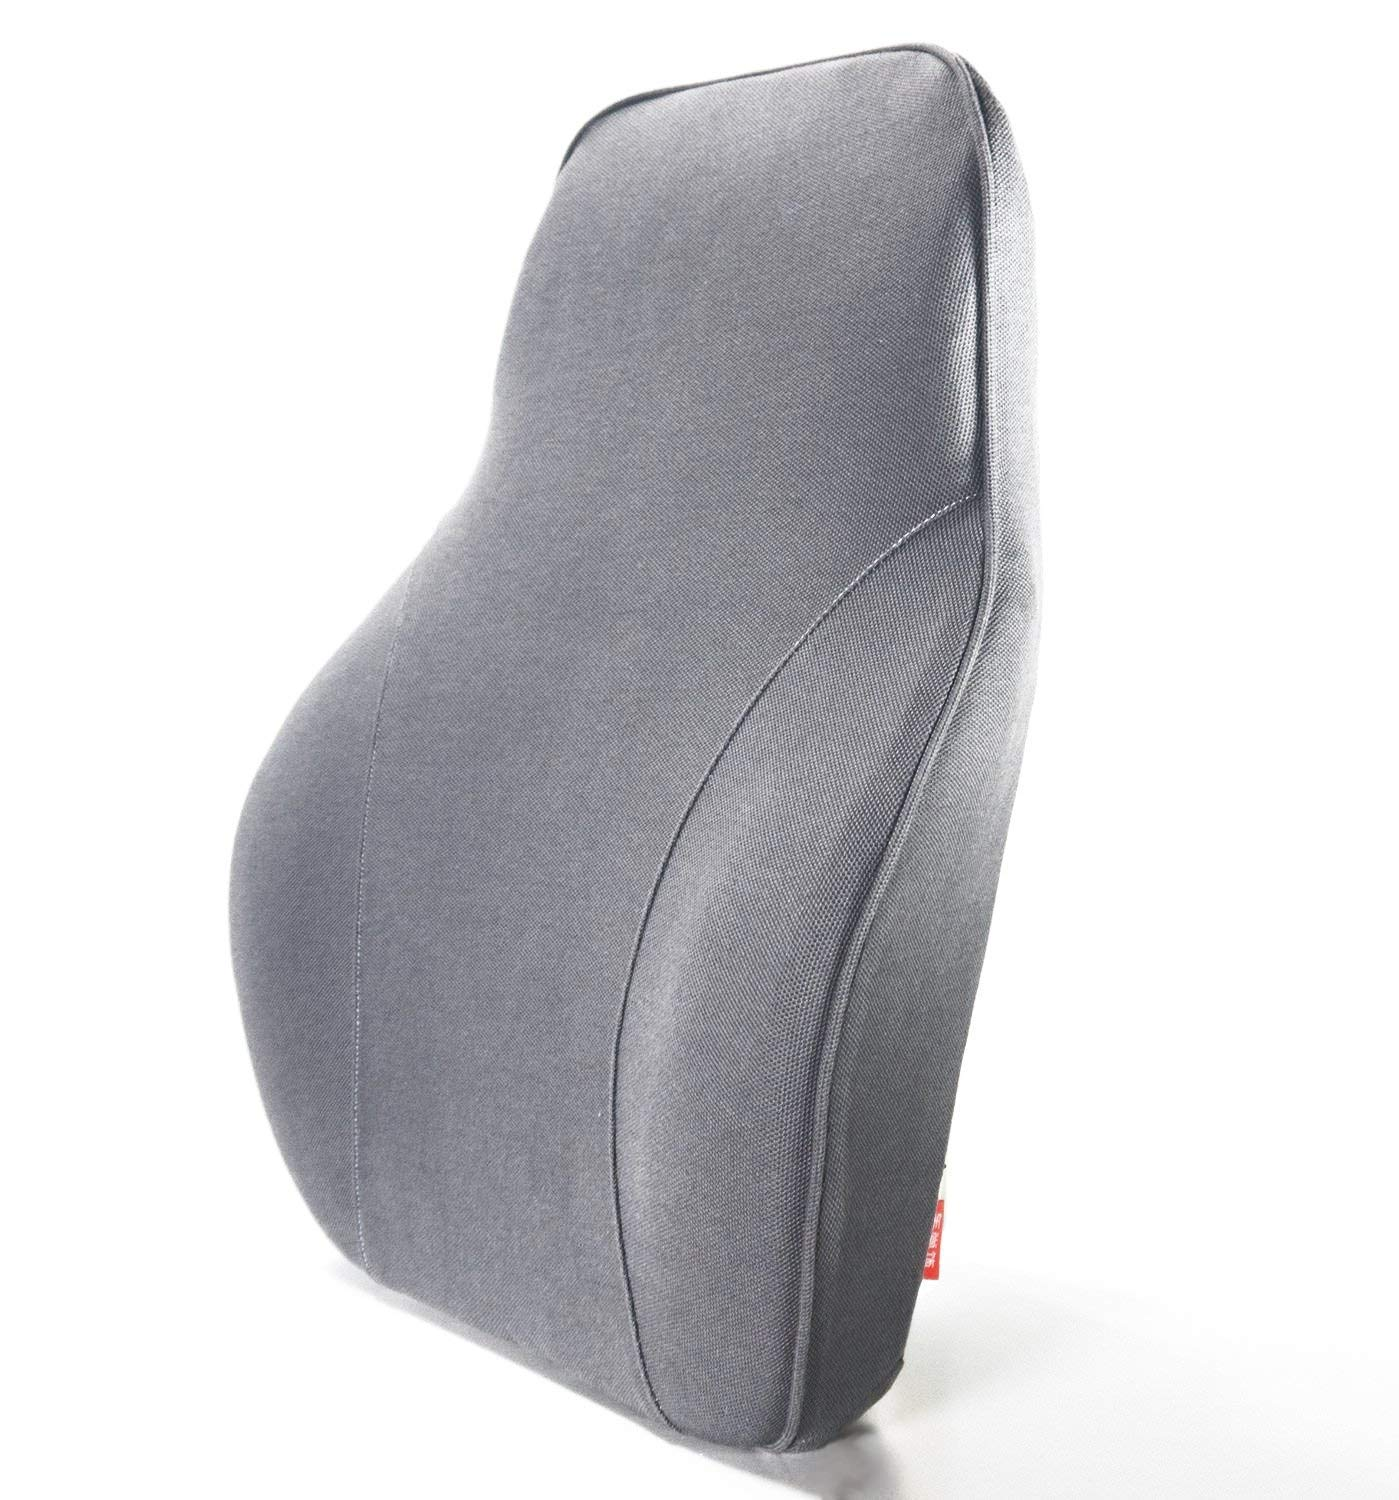 Posture Pro - Therapeutic Grade Chair Back Lumbar Support Cushion For Office Desk Chair - Car - Home - Travel - Maternity Pillow Alternative - Improves blood circulation & Alleviates Lower Back Pain Posture Pro Uk